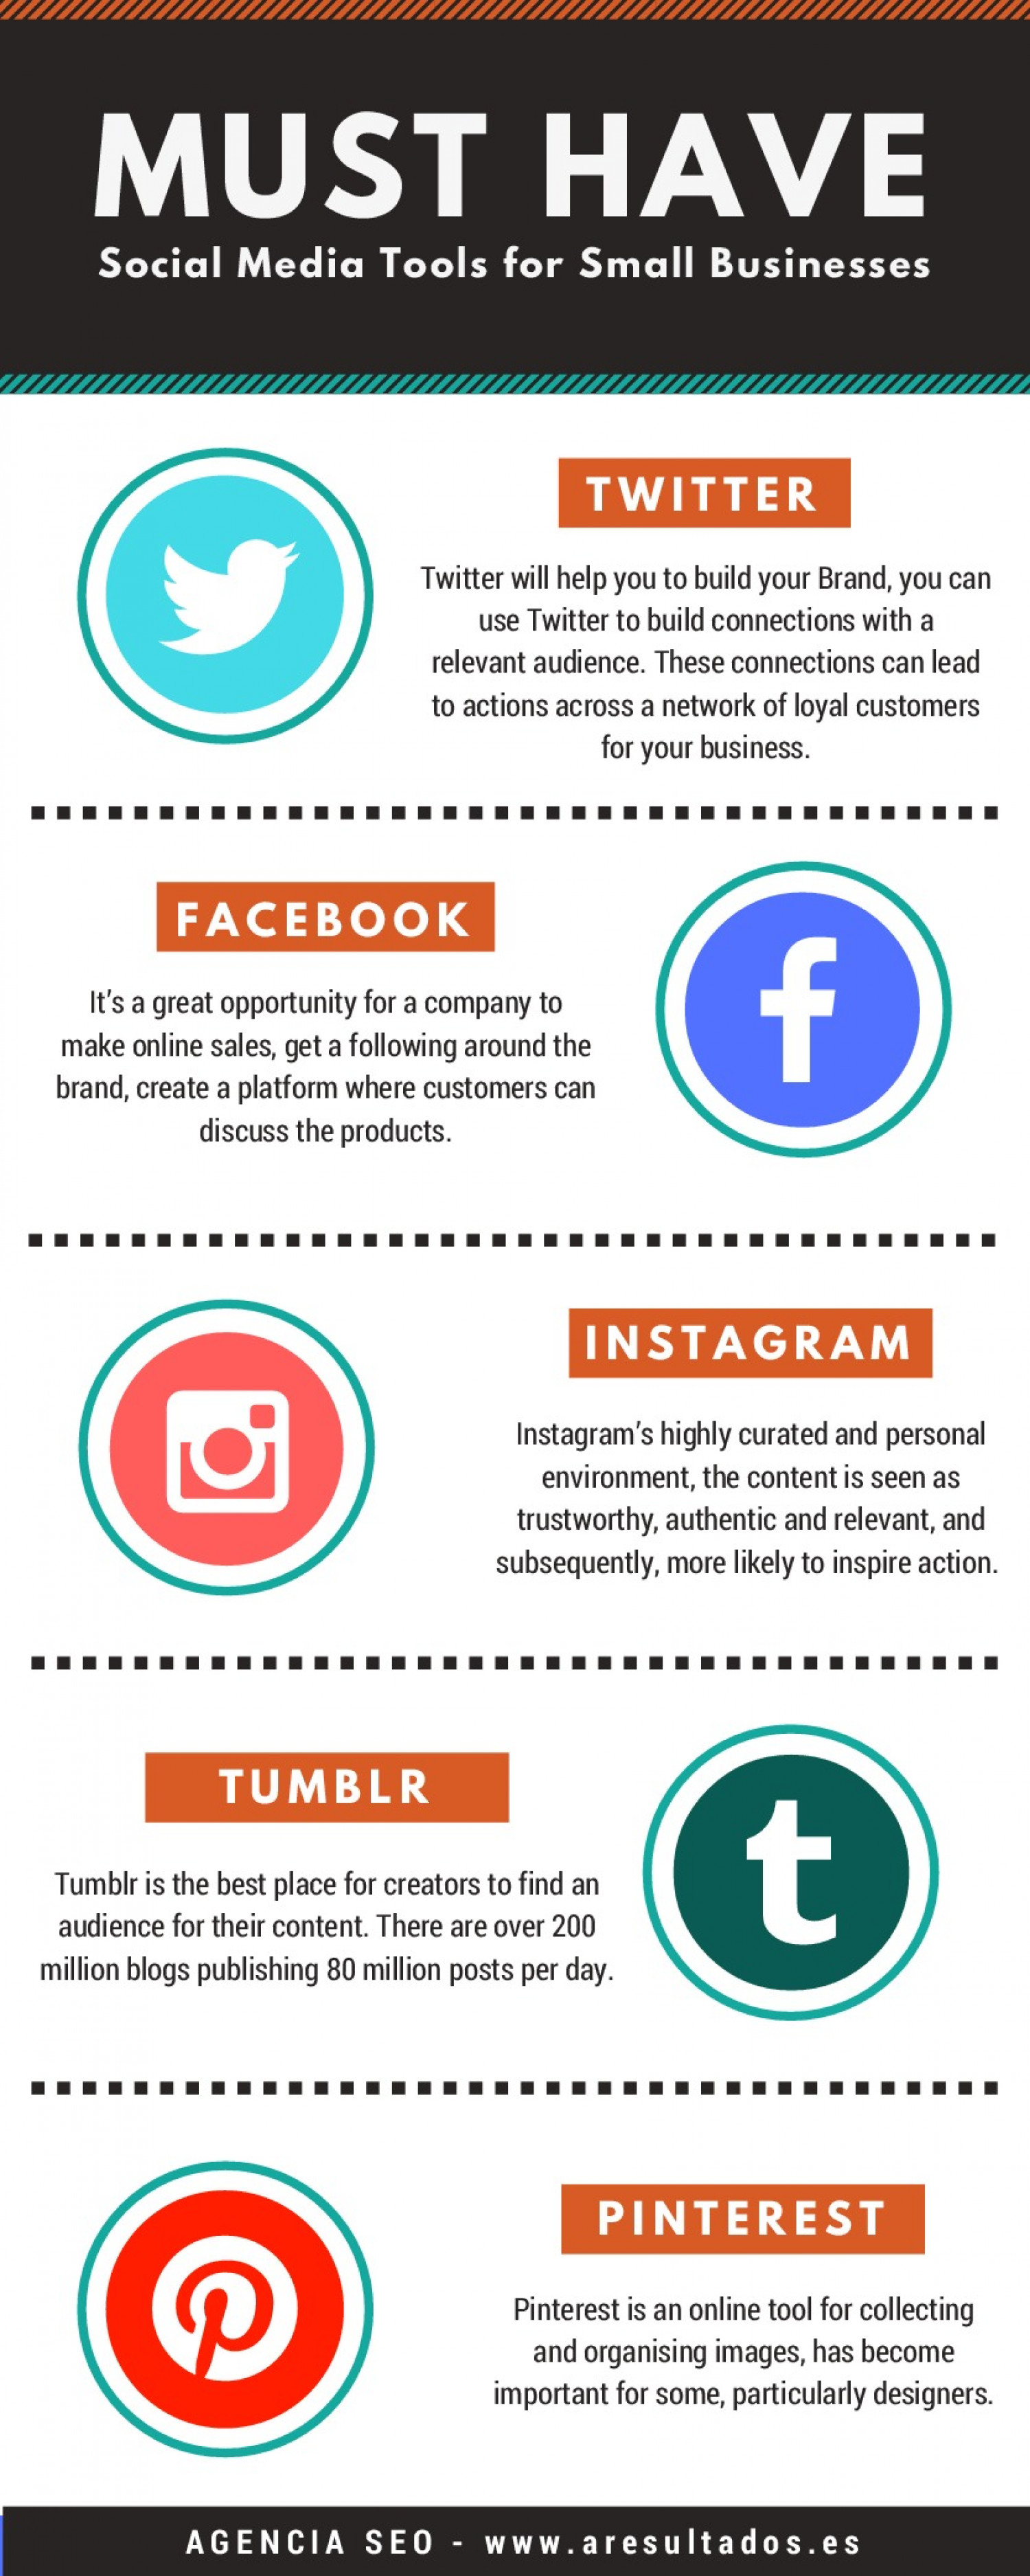 Must Have Social Media Tools For Small Businesses - Agencia SEO - ARESULTADOS.es Infographic